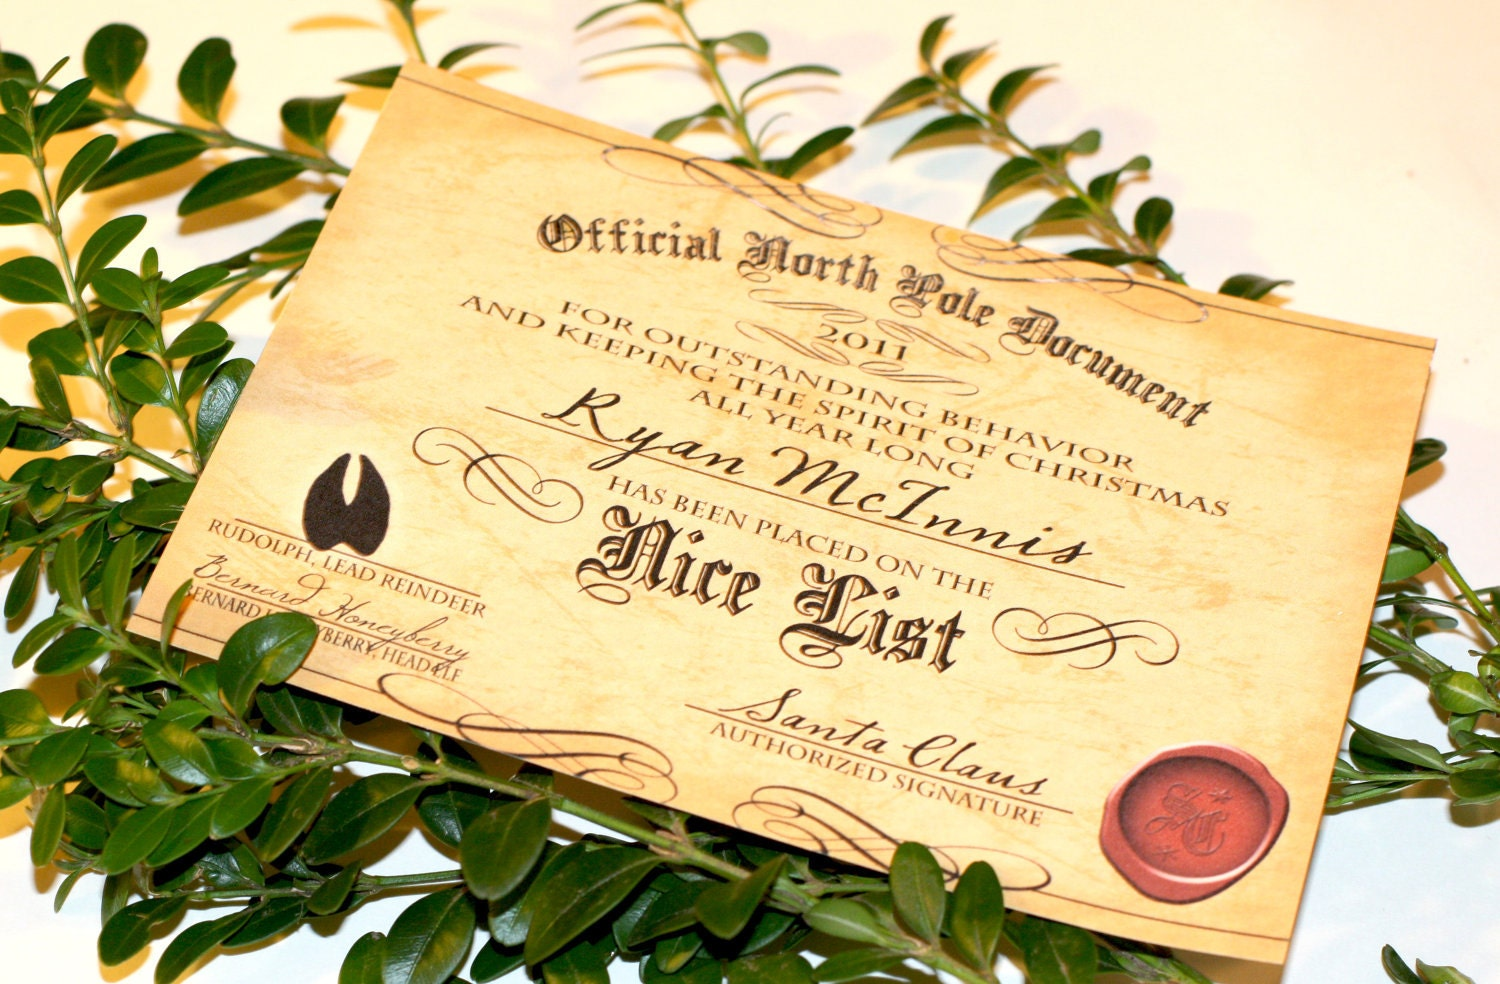 to Editable NICE LIST CERTIFICATE Printable Instant Download on Etsy ...